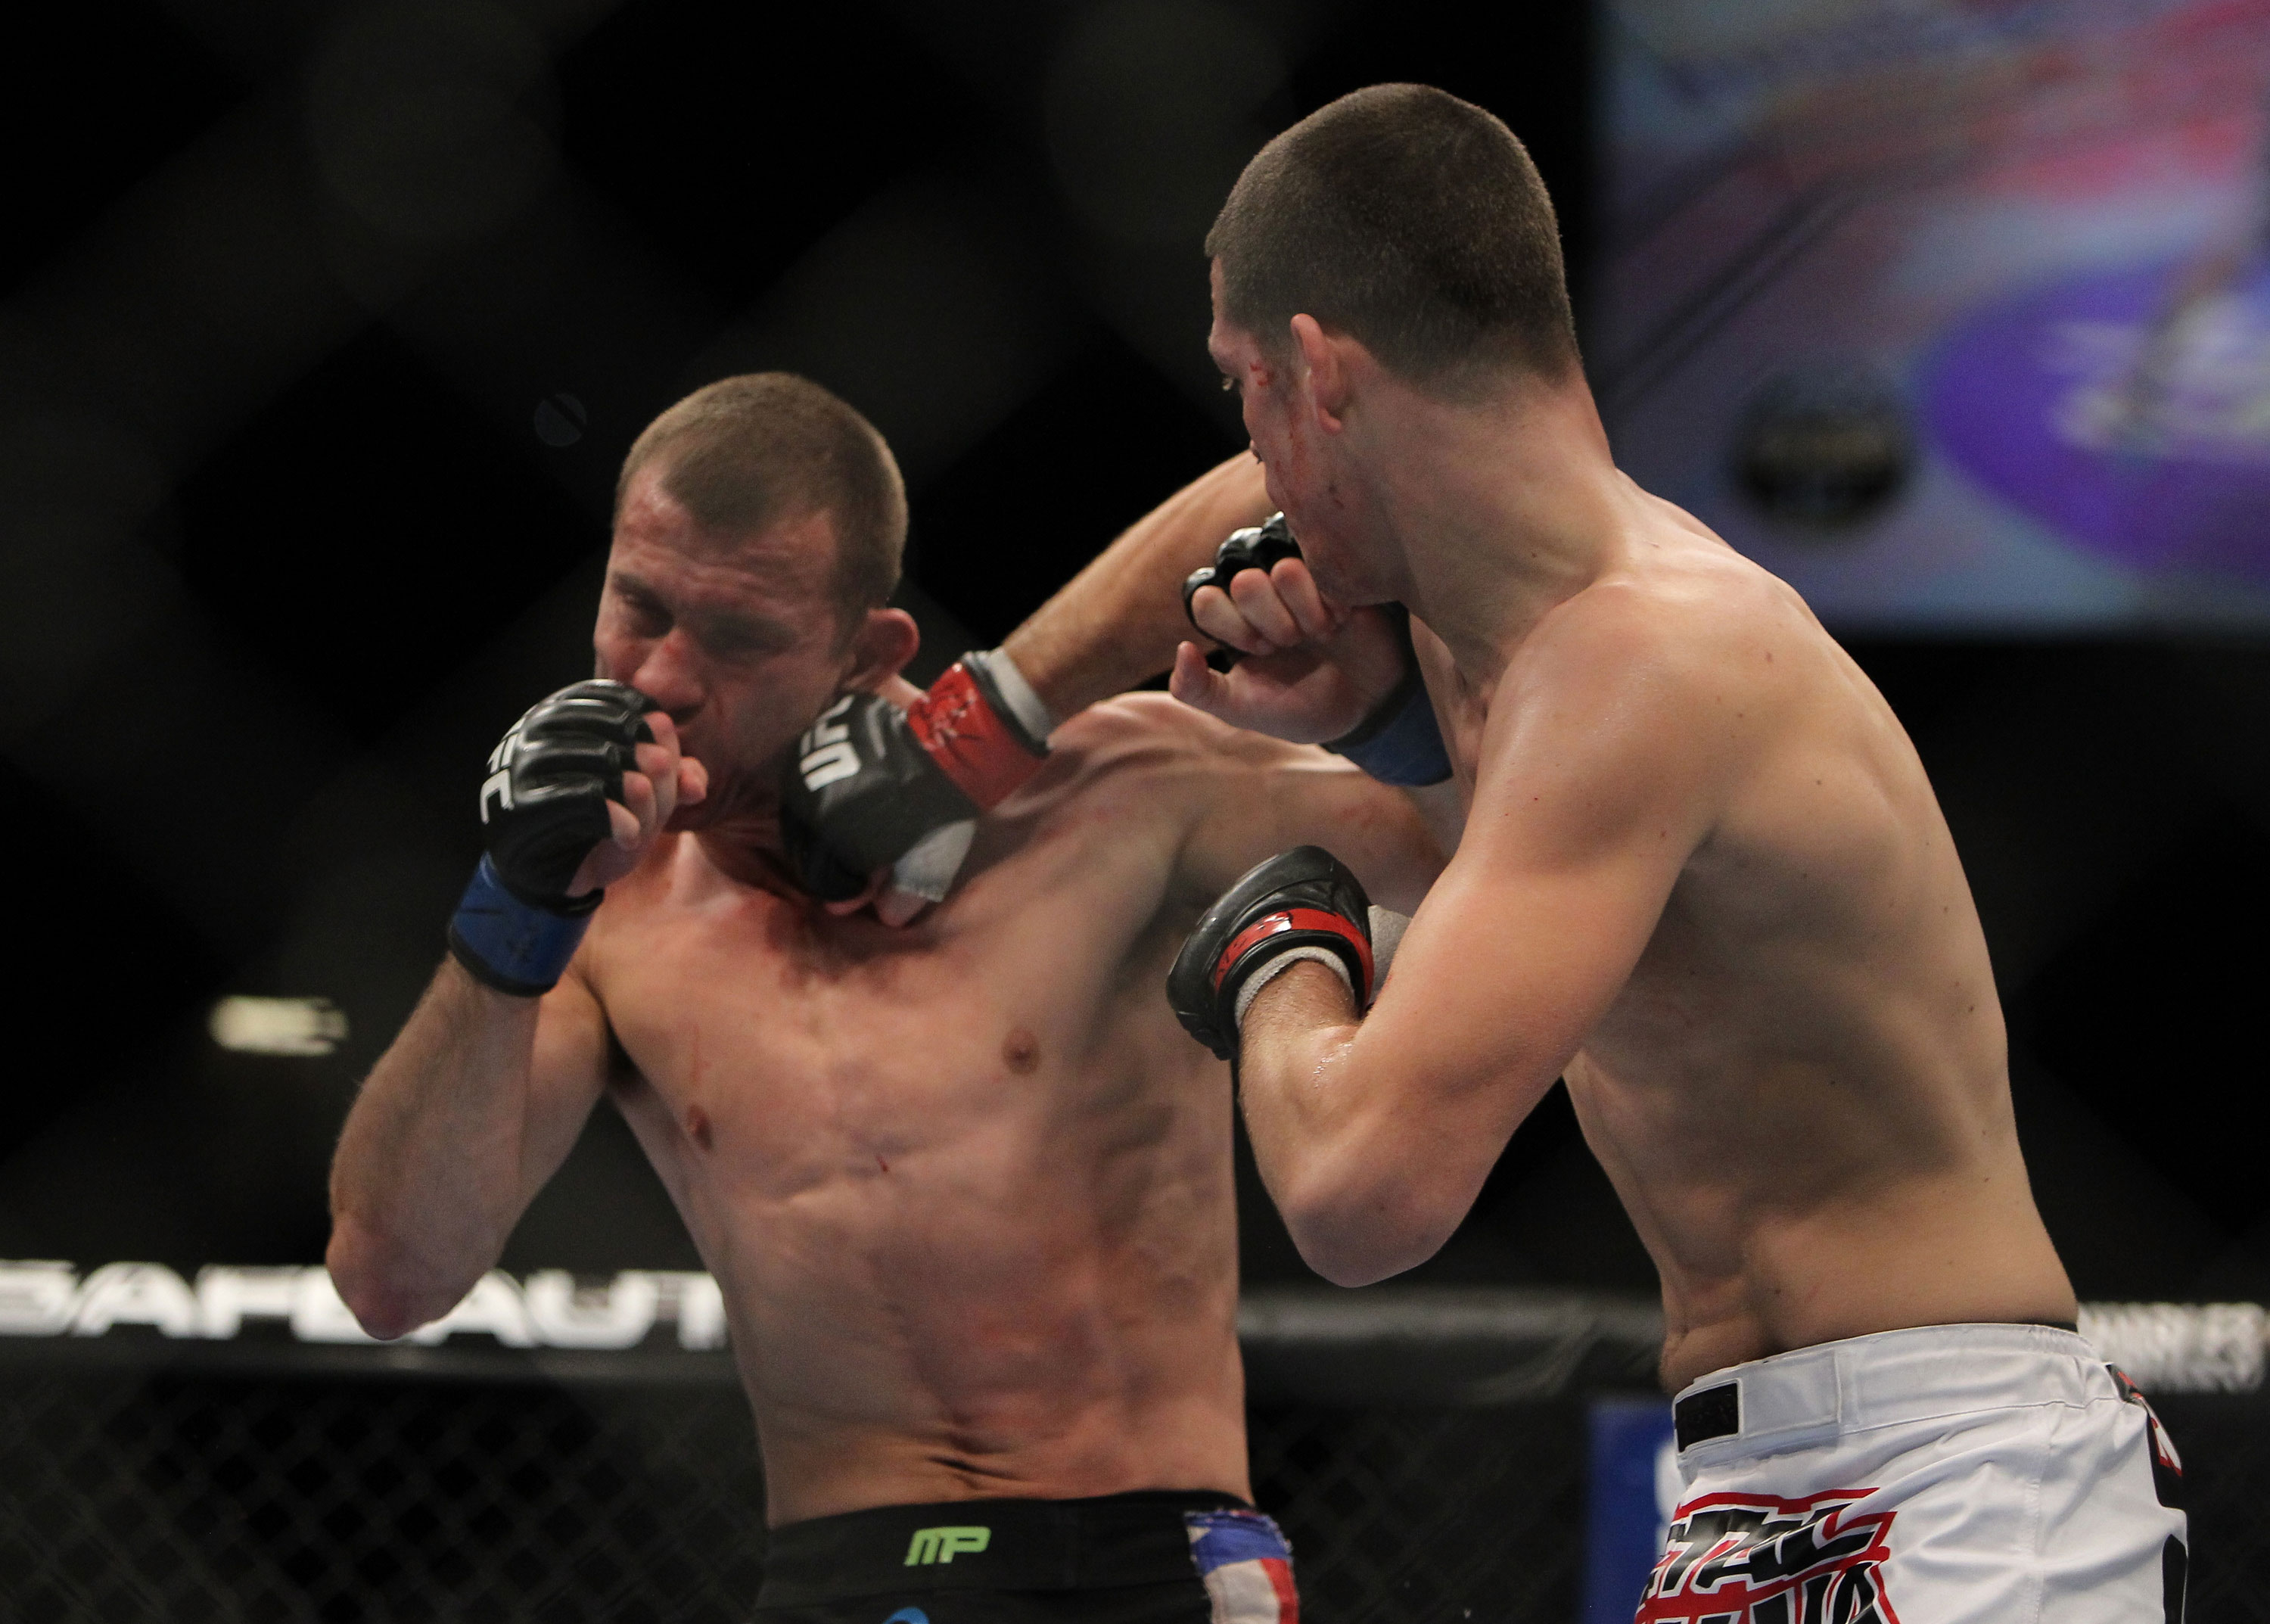 LAS VEGAS, NV - DECEMBER 30:  Nate Diaz (right) punches Donald Cerrone (left) during the UFC 141 event at the MGM Grand Garden Arena on December 30, 2011 in Las Vegas, Nevada.  (Photo by Josh Hedges/Zuffa LLC/Zuffa LLC via Getty Images) *** Local Caption *** Nate Diaz; Donald Cerrone